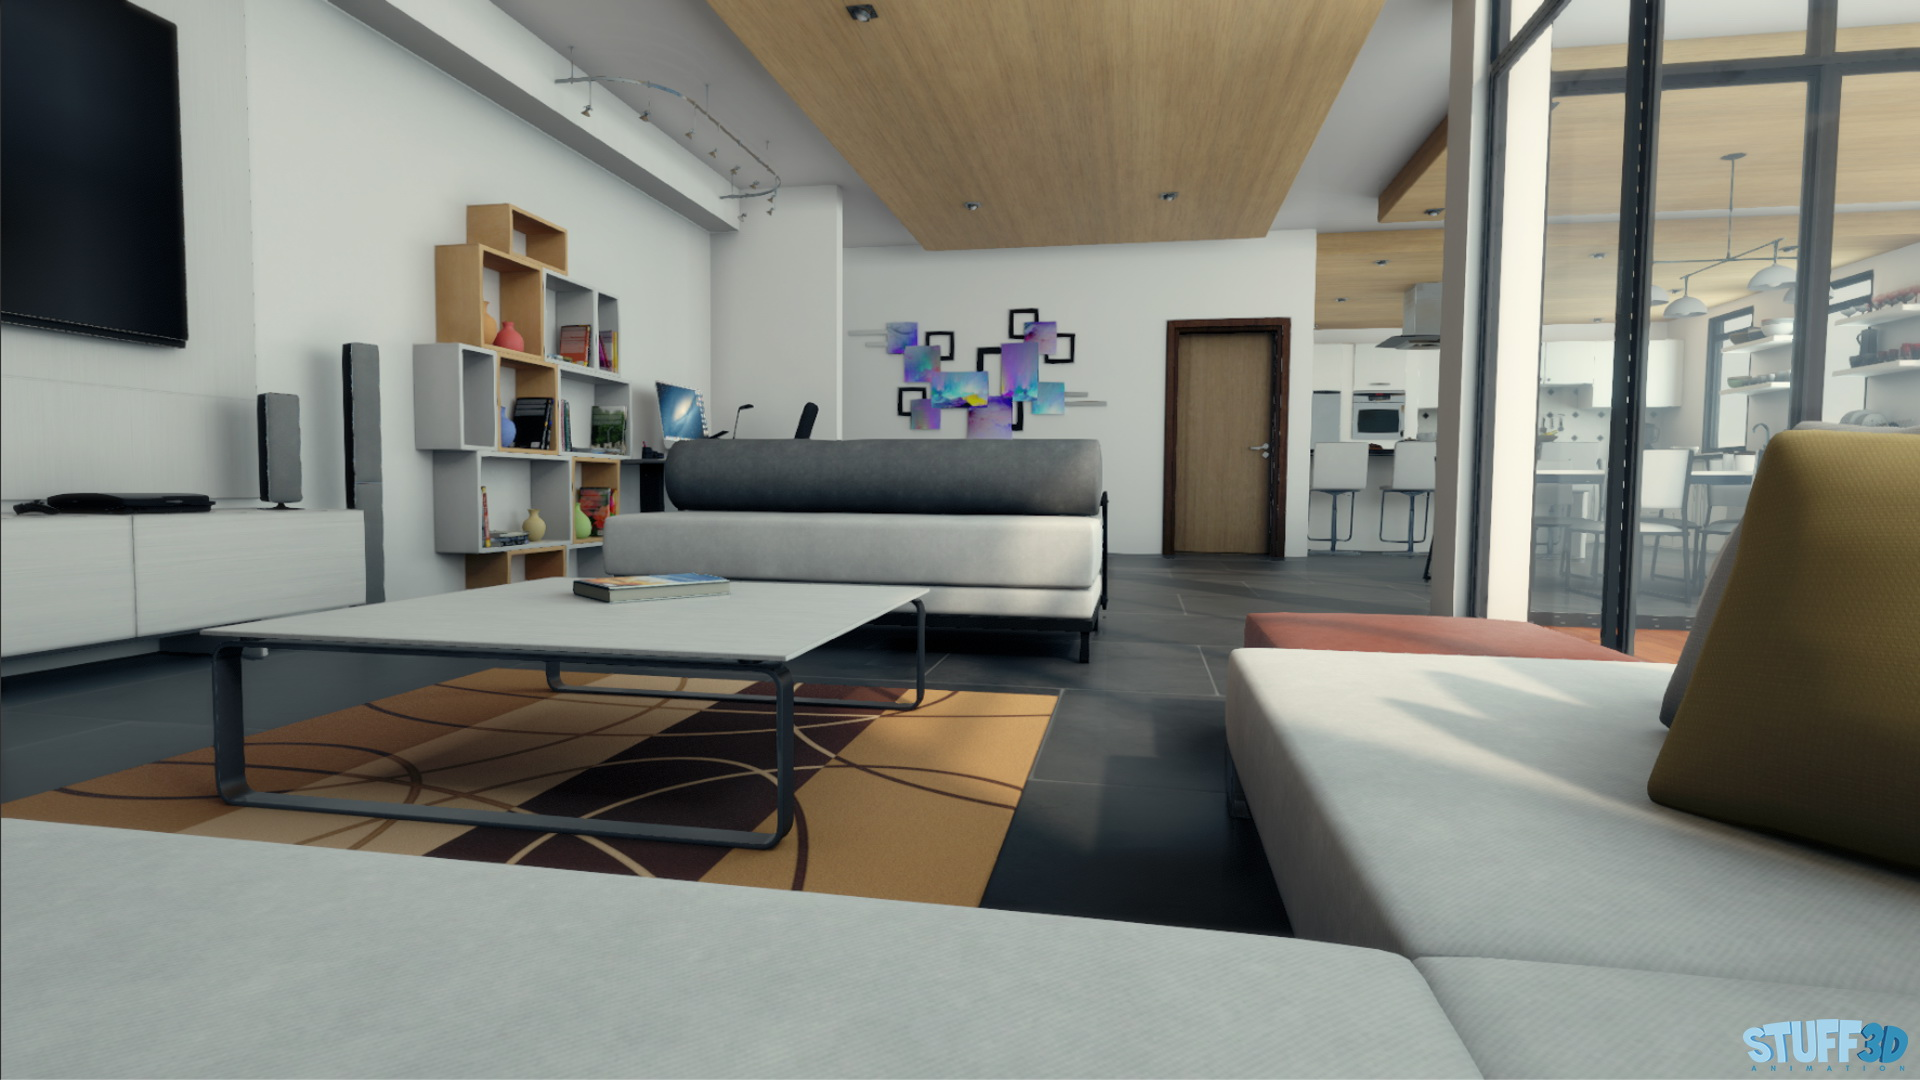 Apartment – Real Time Unity3D – 02